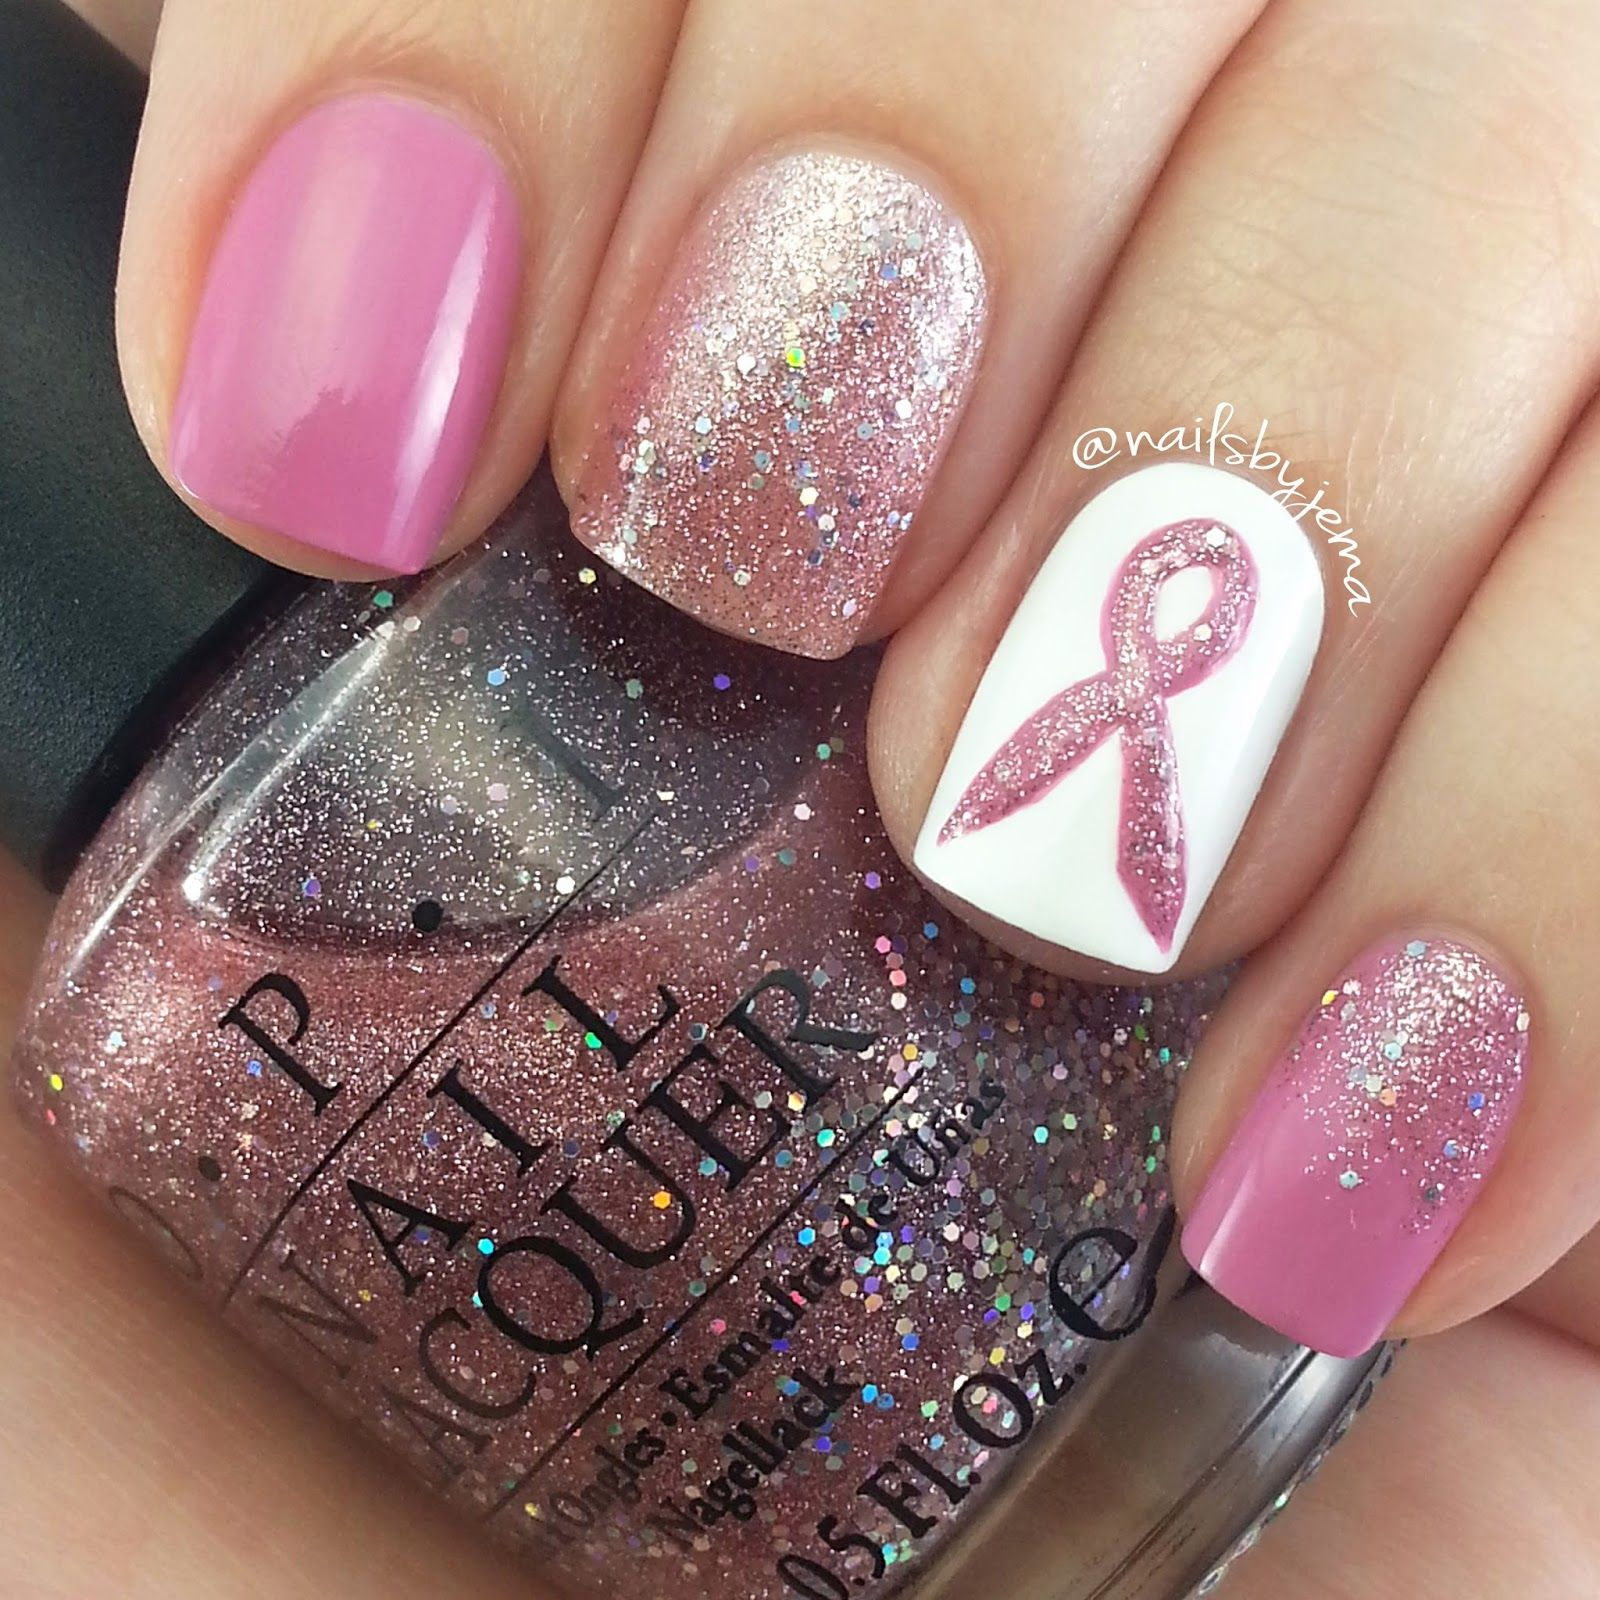 Nails By Jema: Going PINK für Oktober und Breast Cancer Awareness Month !!   – Hair and nails